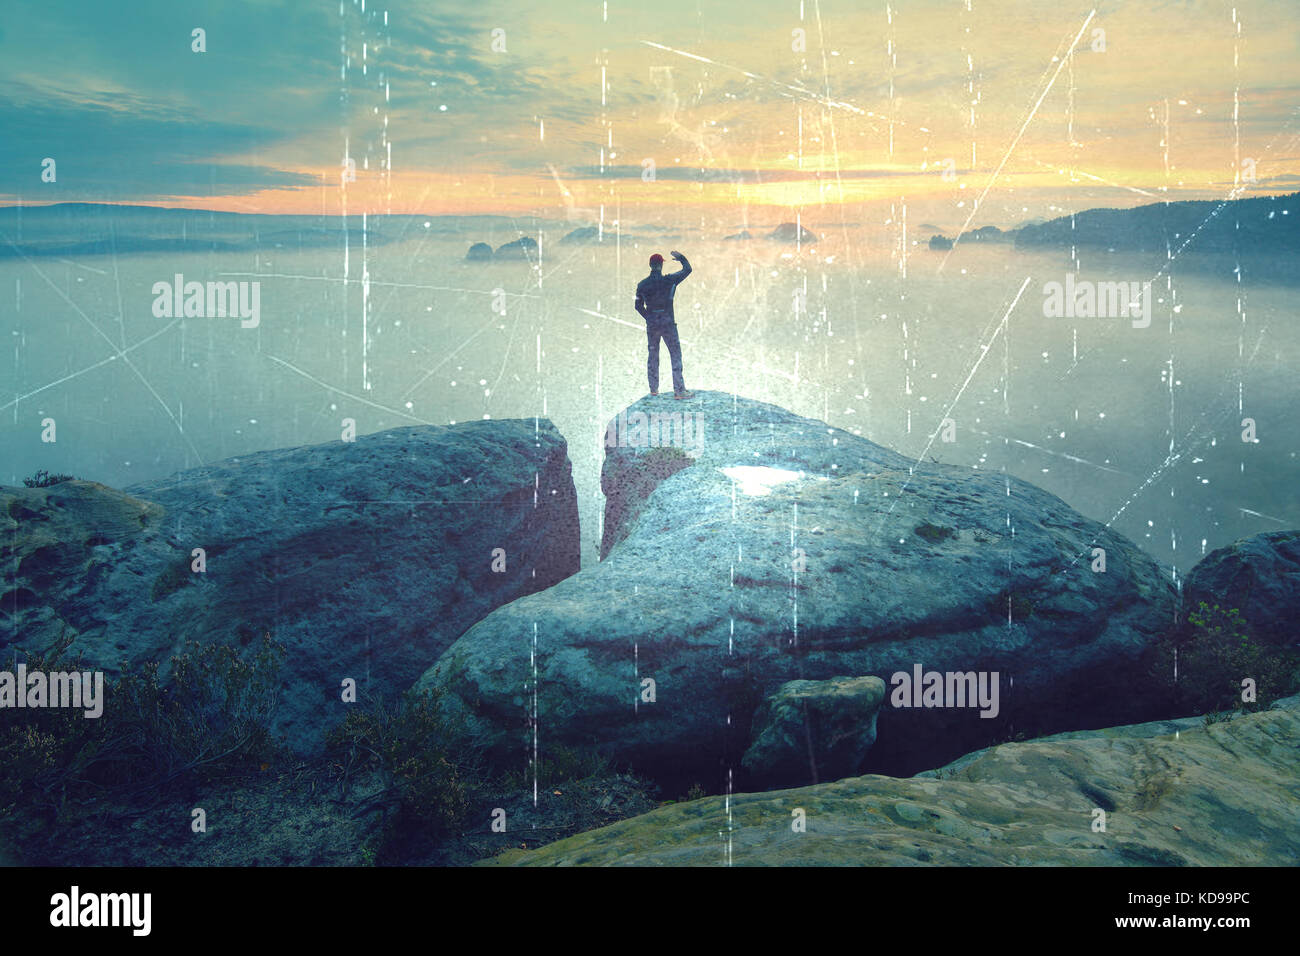 Lens defect. Sharp rear man silhouette on rocky peak. Satisfy hiker enjoy view. Tall man on rocky cliff watching - Stock Image